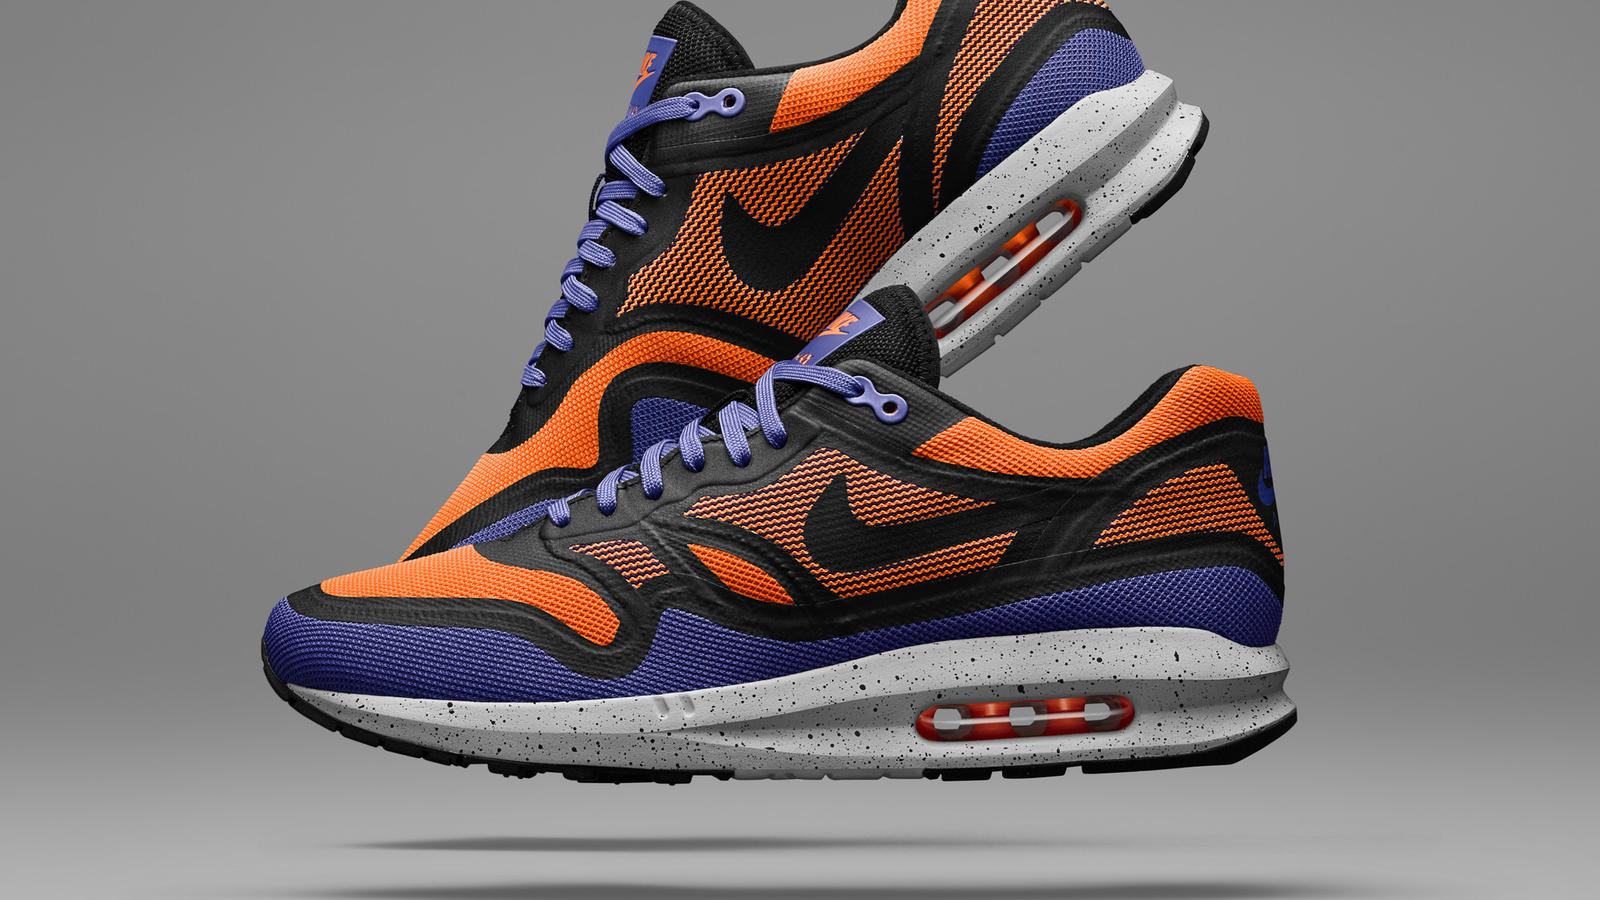 Nike Breathe Collection: Nike Air Max Lunar1